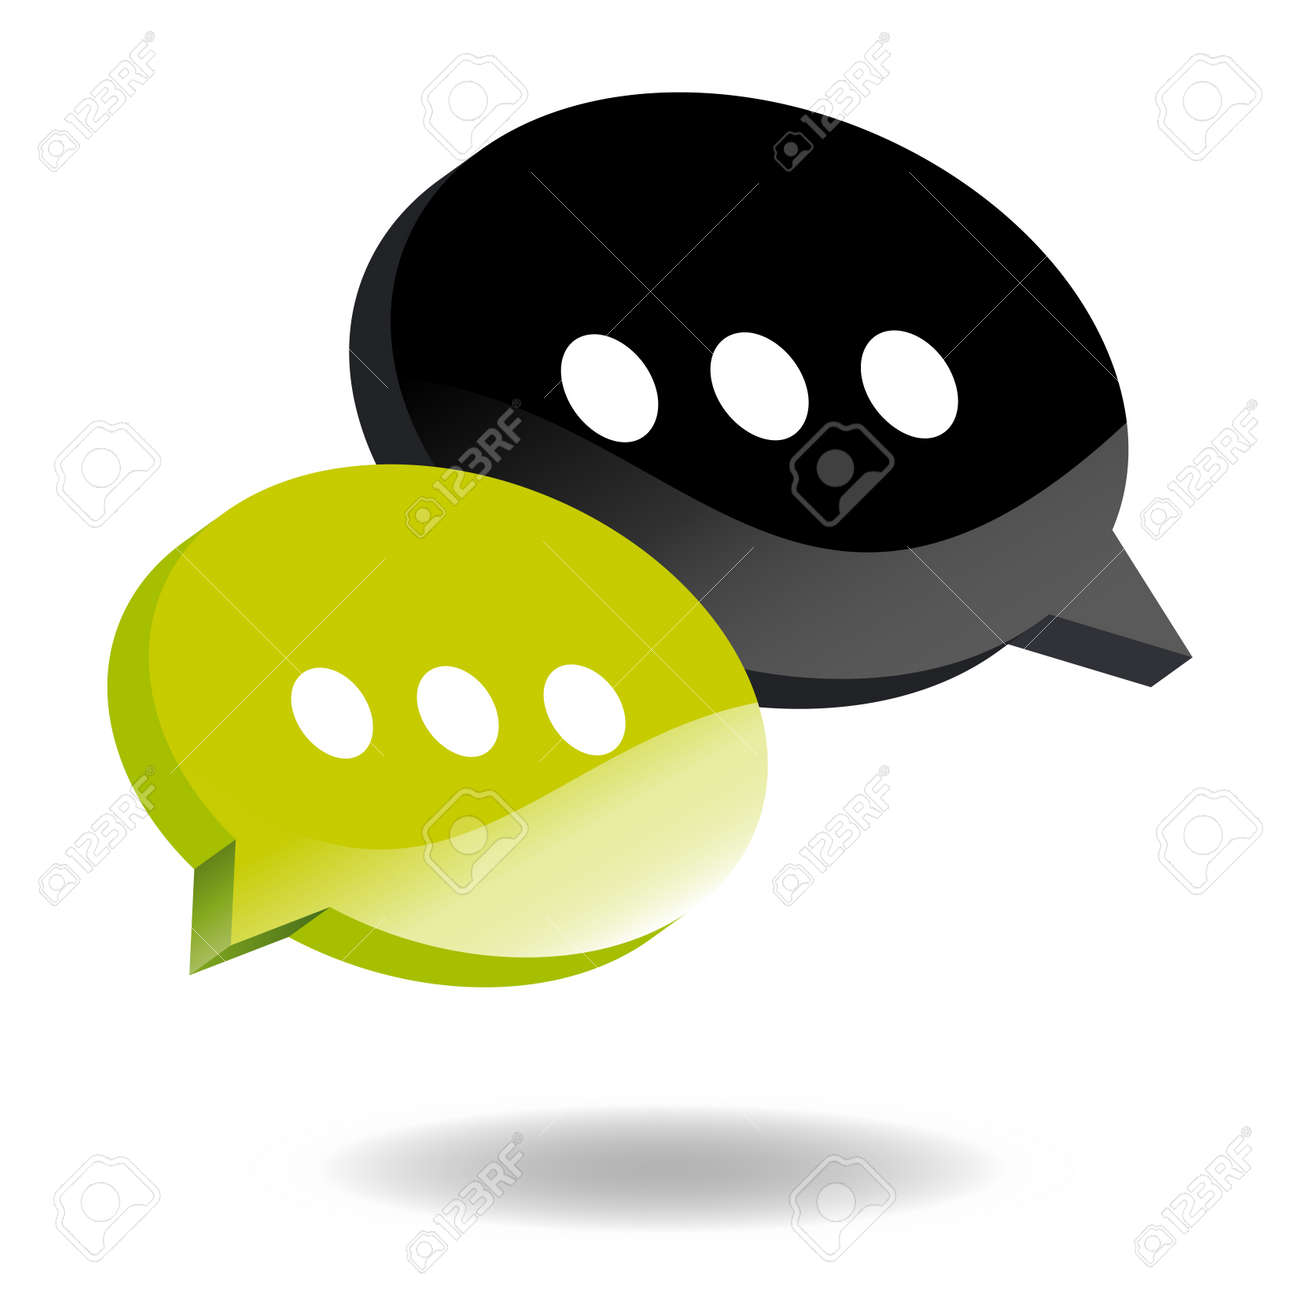 speech balloon symbol Stock Vector - 4377770